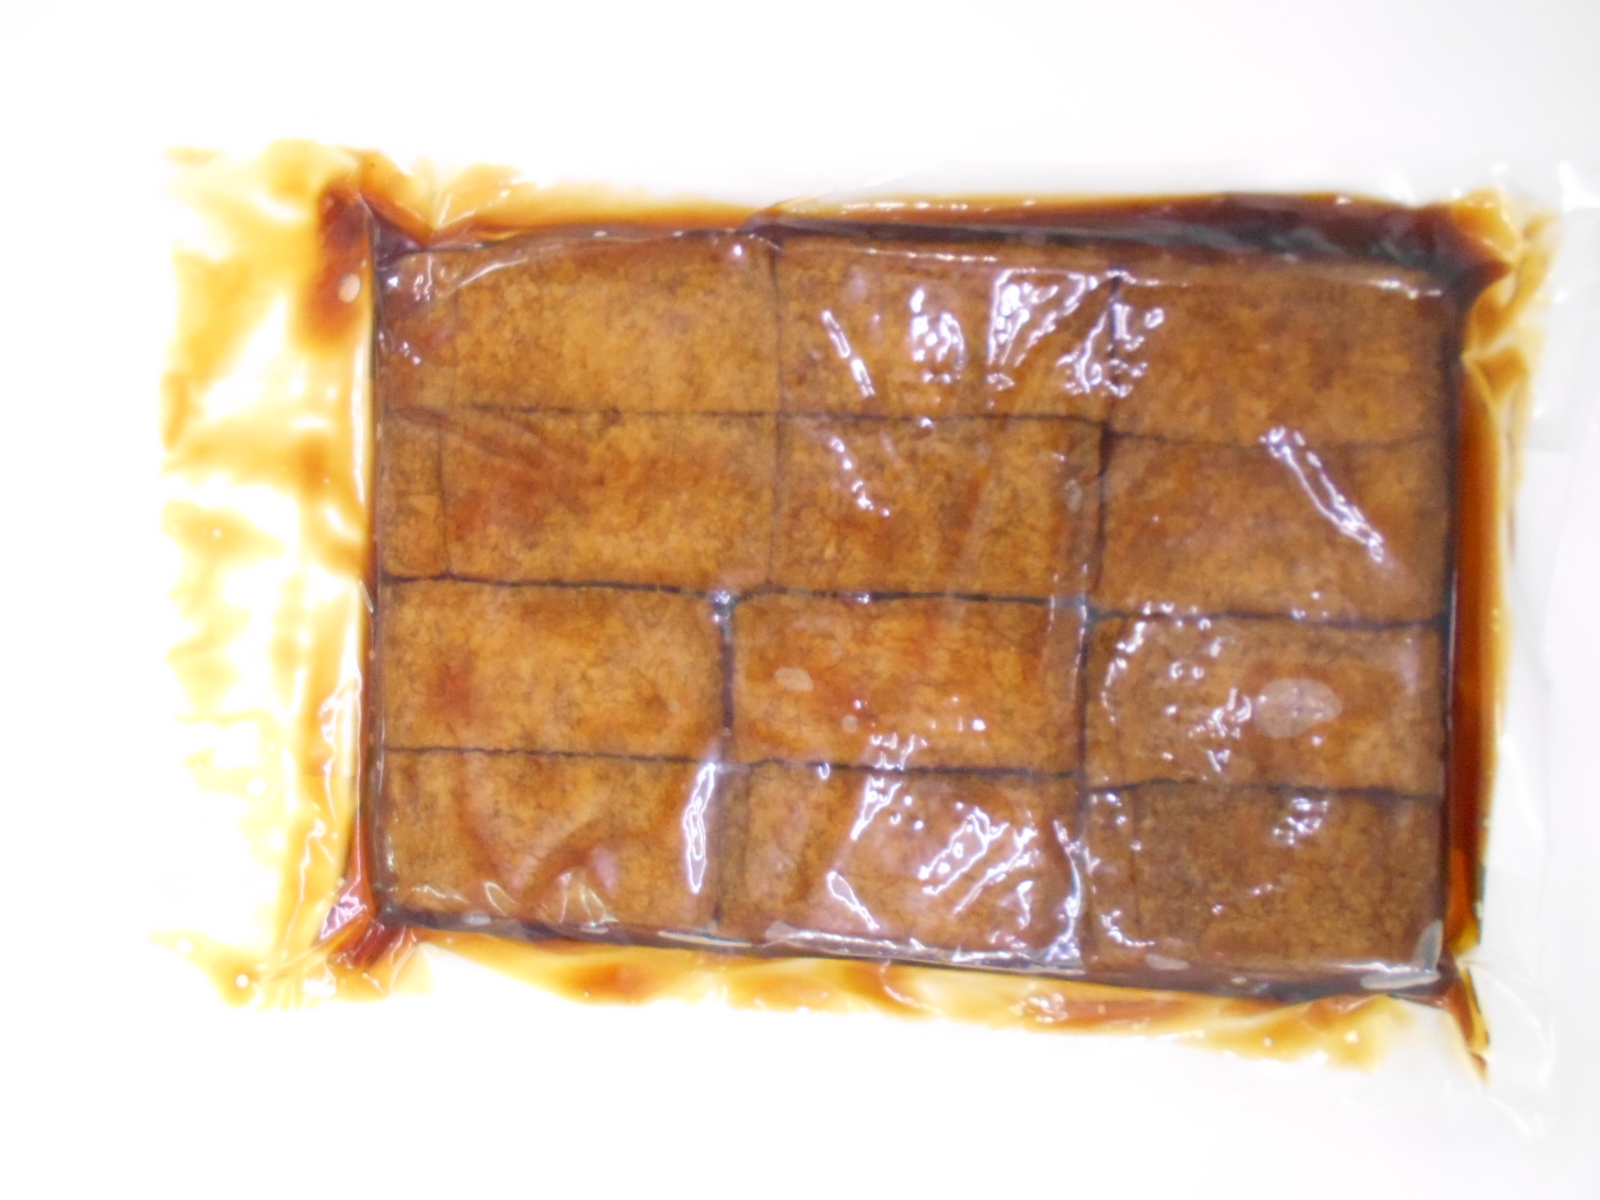 100% delicious oily tofu sushi fried bean curd skin made in Japan